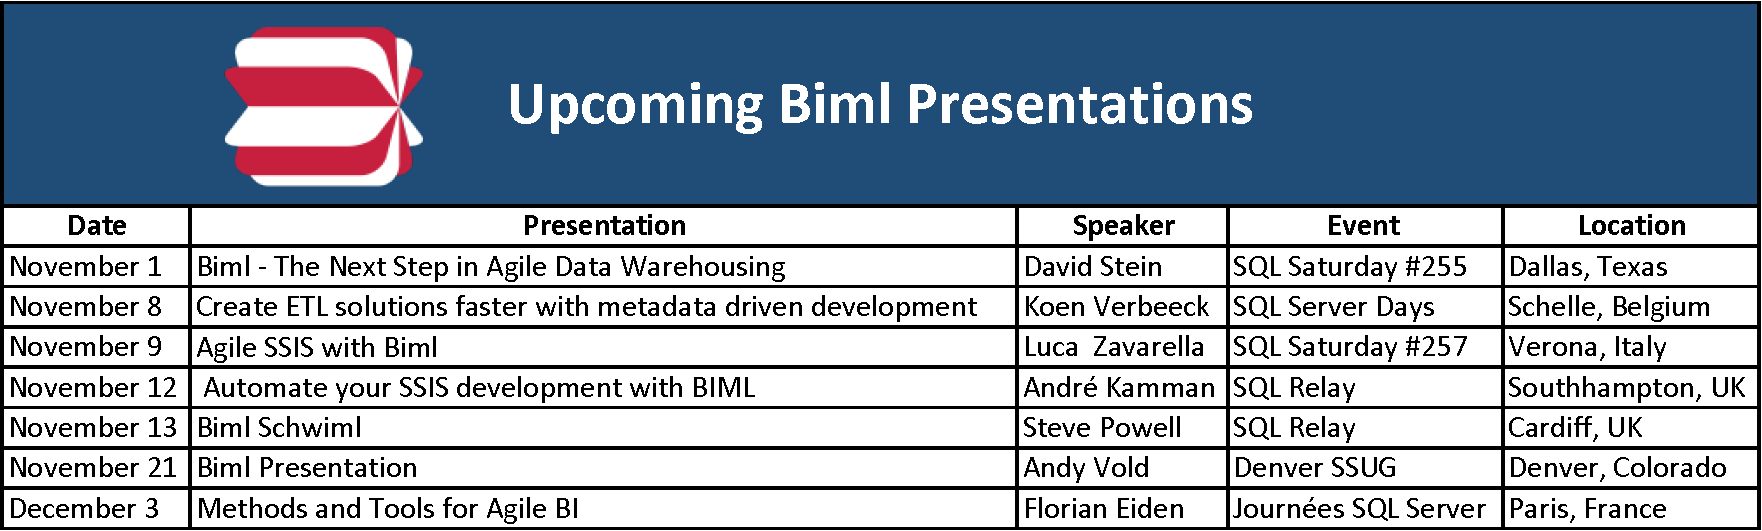 Upcoming Biml Presentations